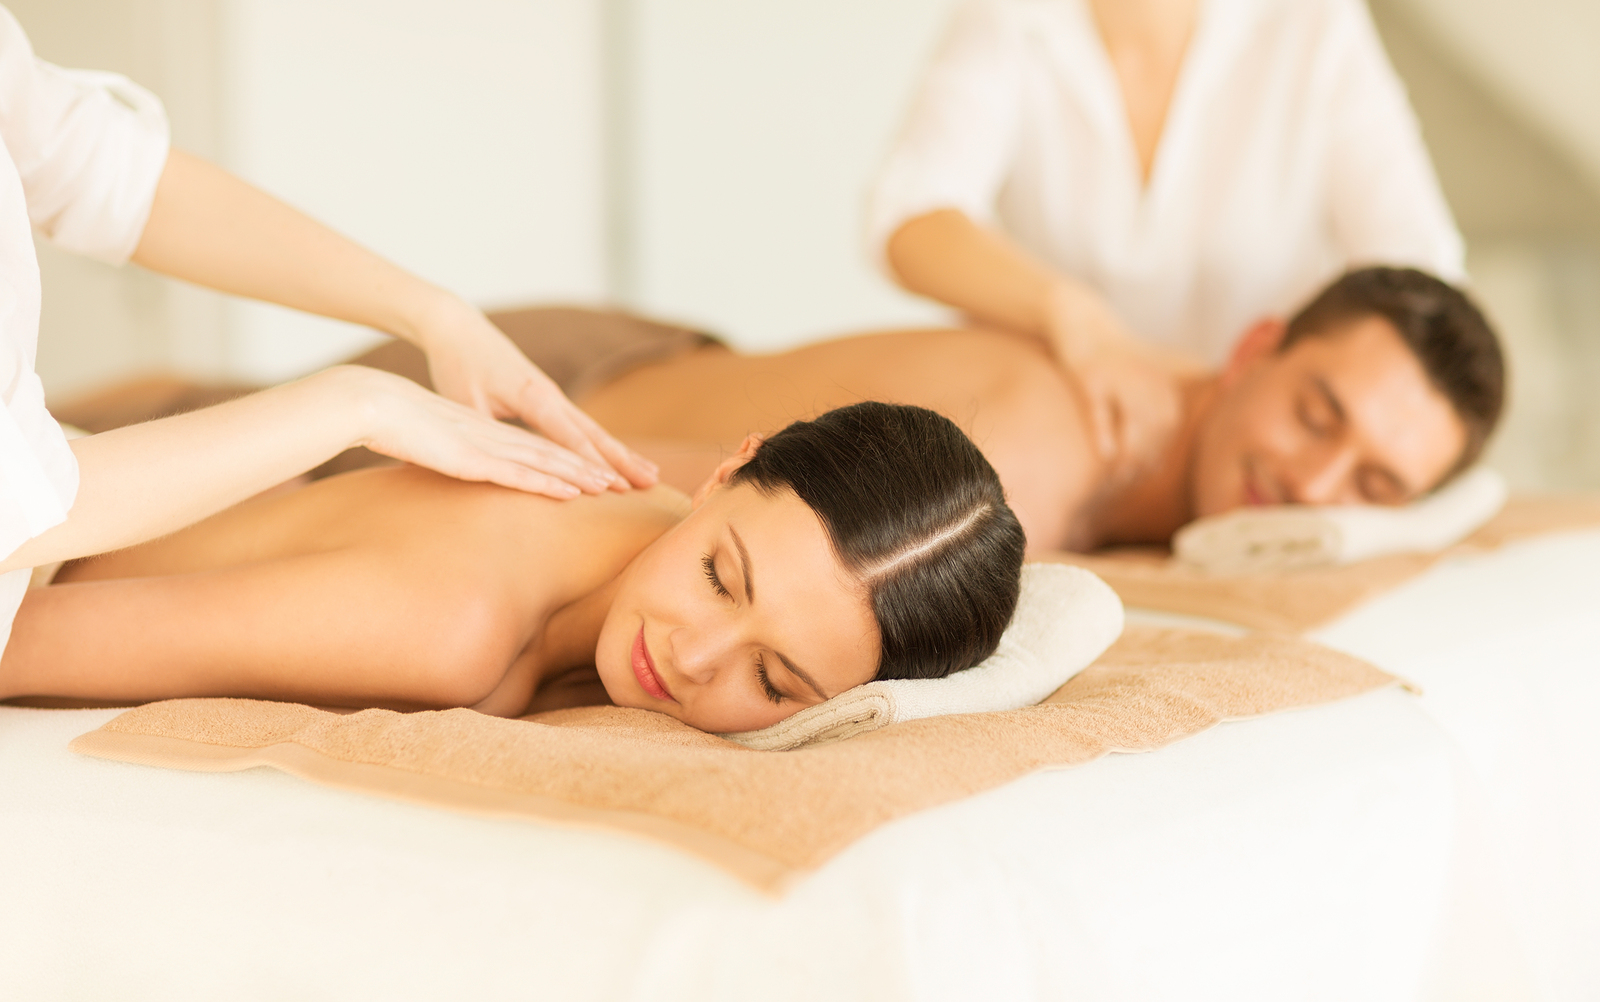 The most effective method to Spot a Quality Massage and Spa Service